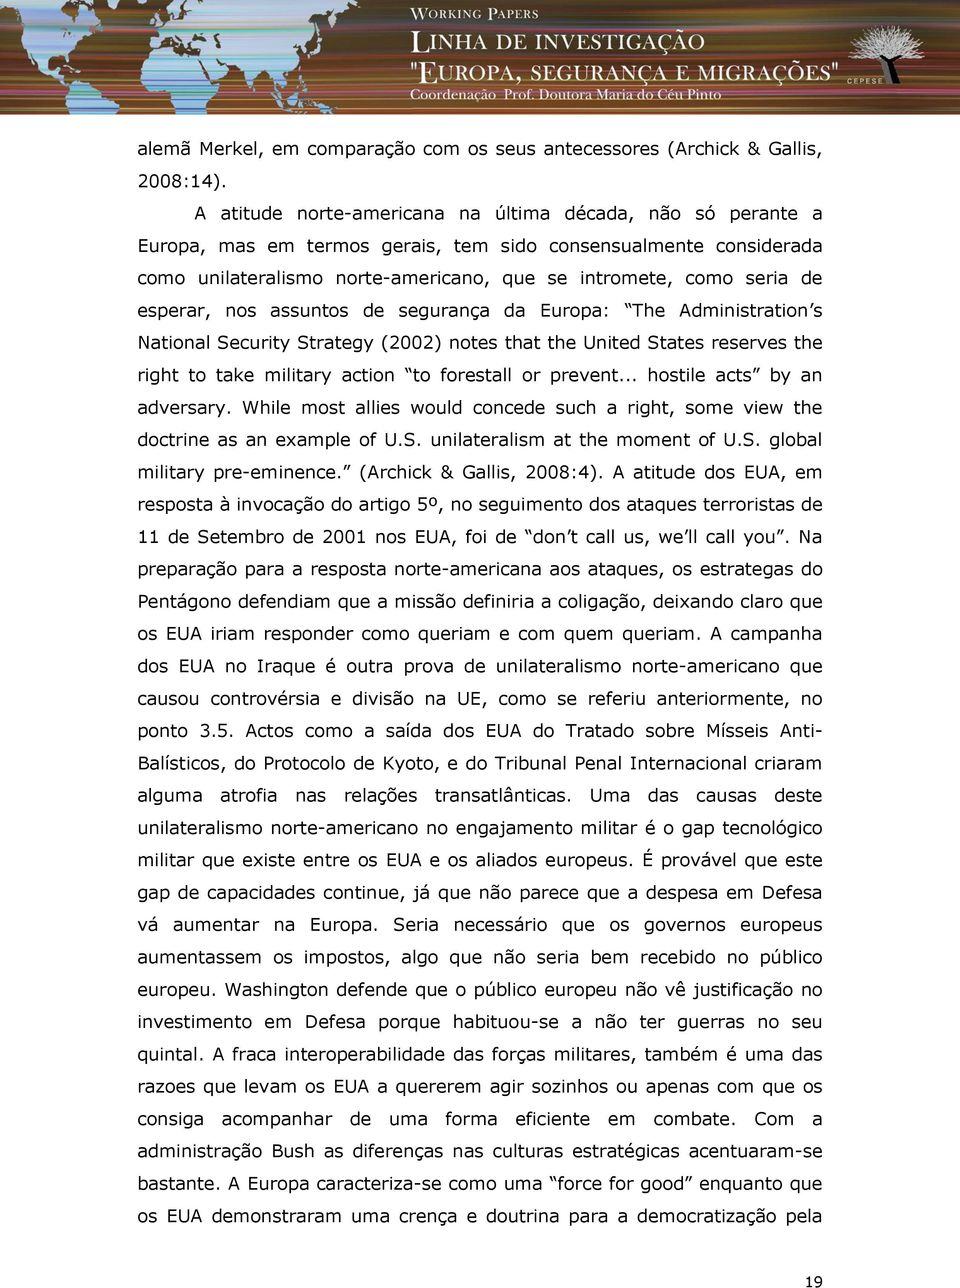 esperar, nos assuntos de segurança da Europa: The Administration s National Security Strategy (2002) notes that the United States reserves the right to take military action to forestall or prevent.